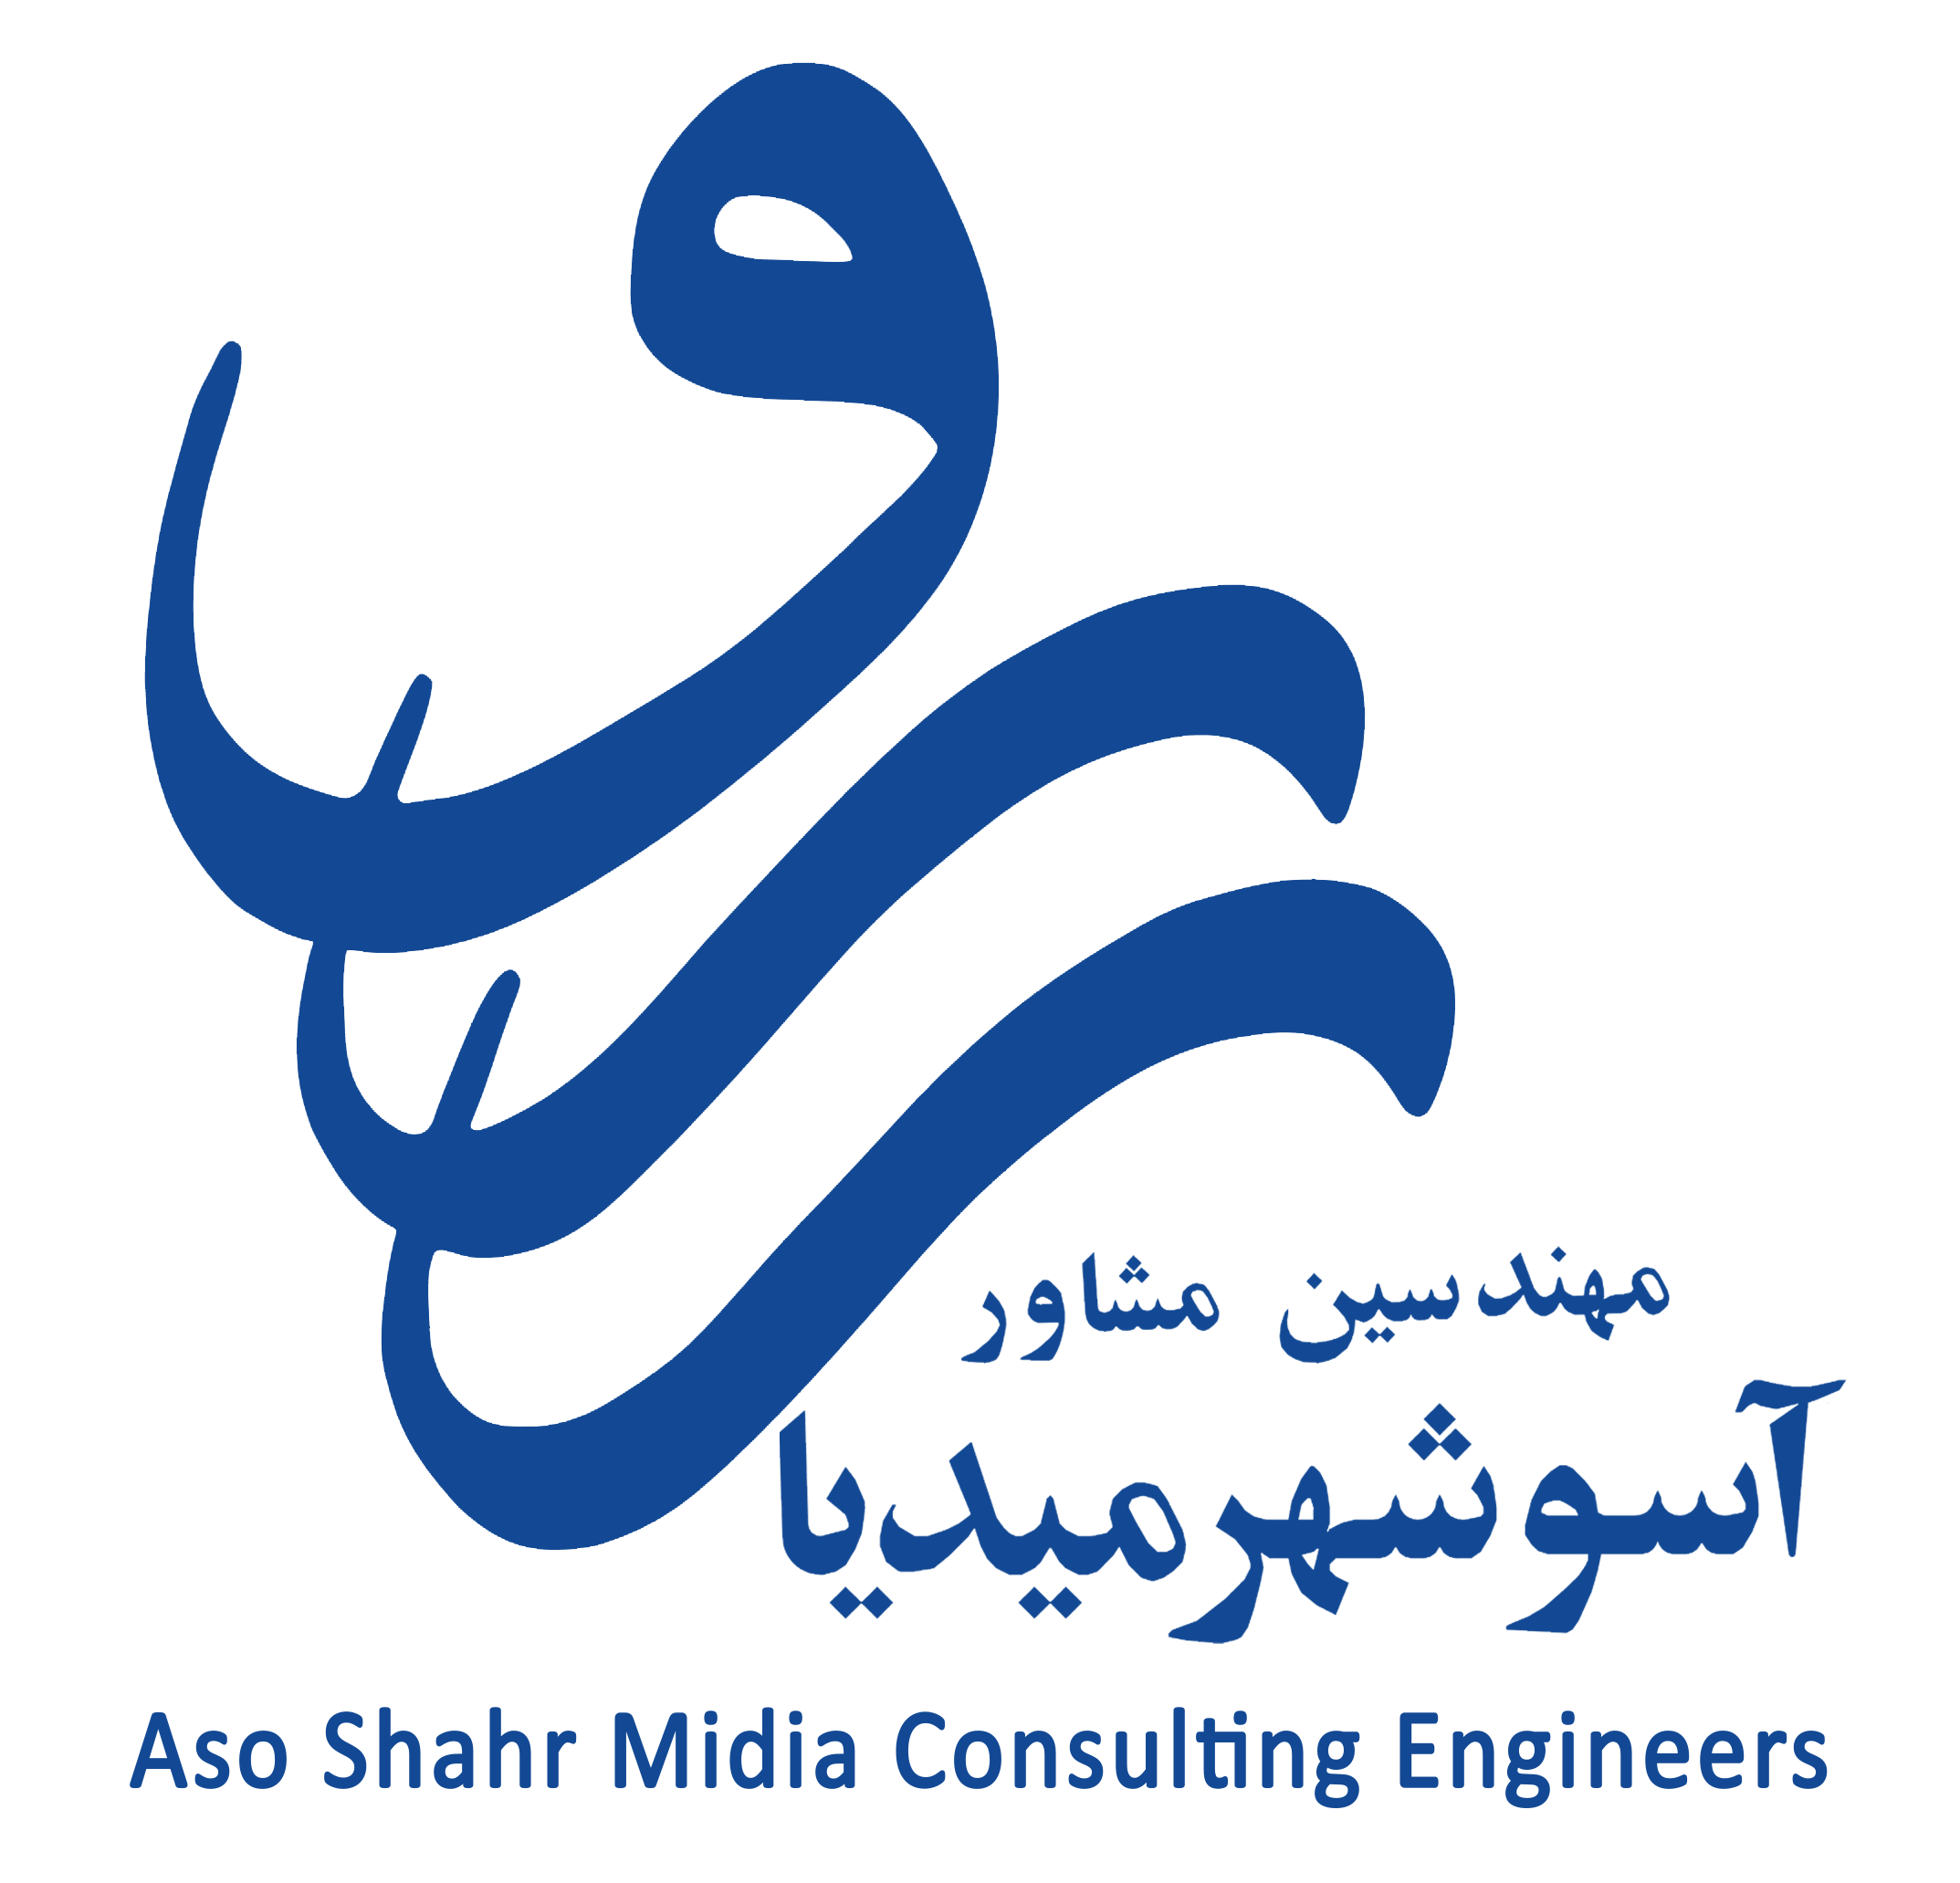 Aso Shahr Consulting Engineers